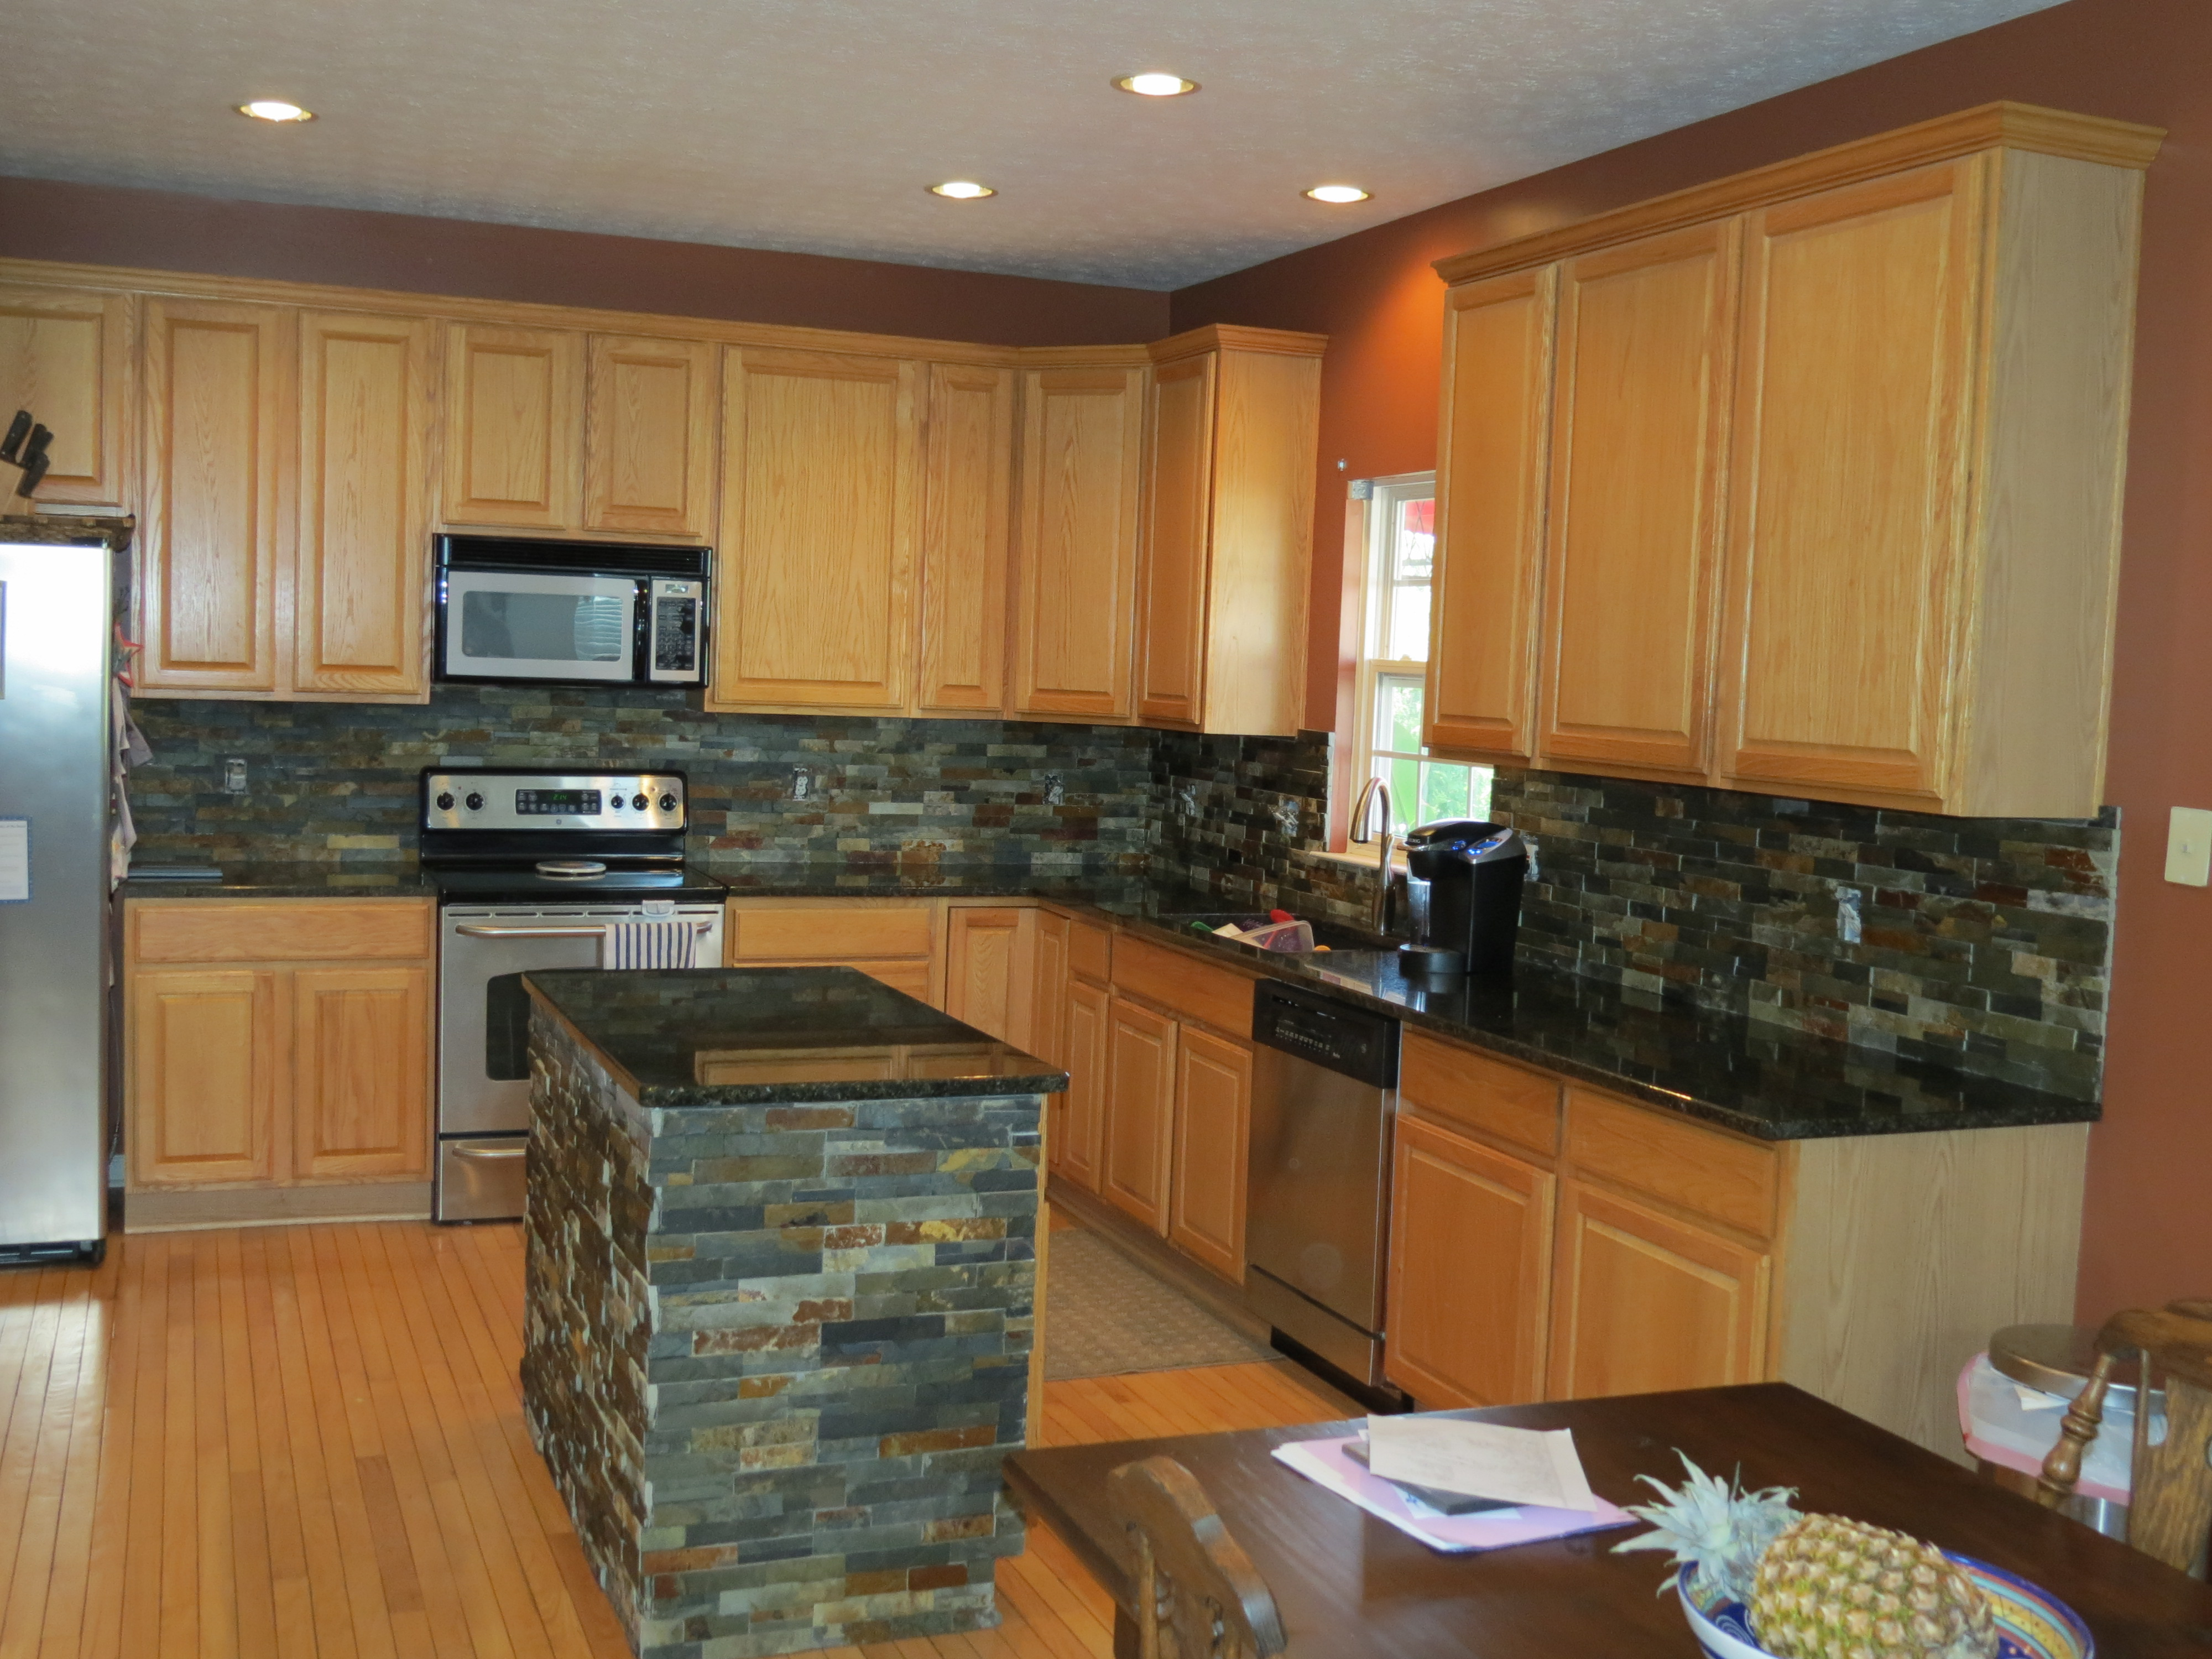 how to install kitchen backsplash install kitchen island The glamorous How to install kitchen backsplash renewing picture